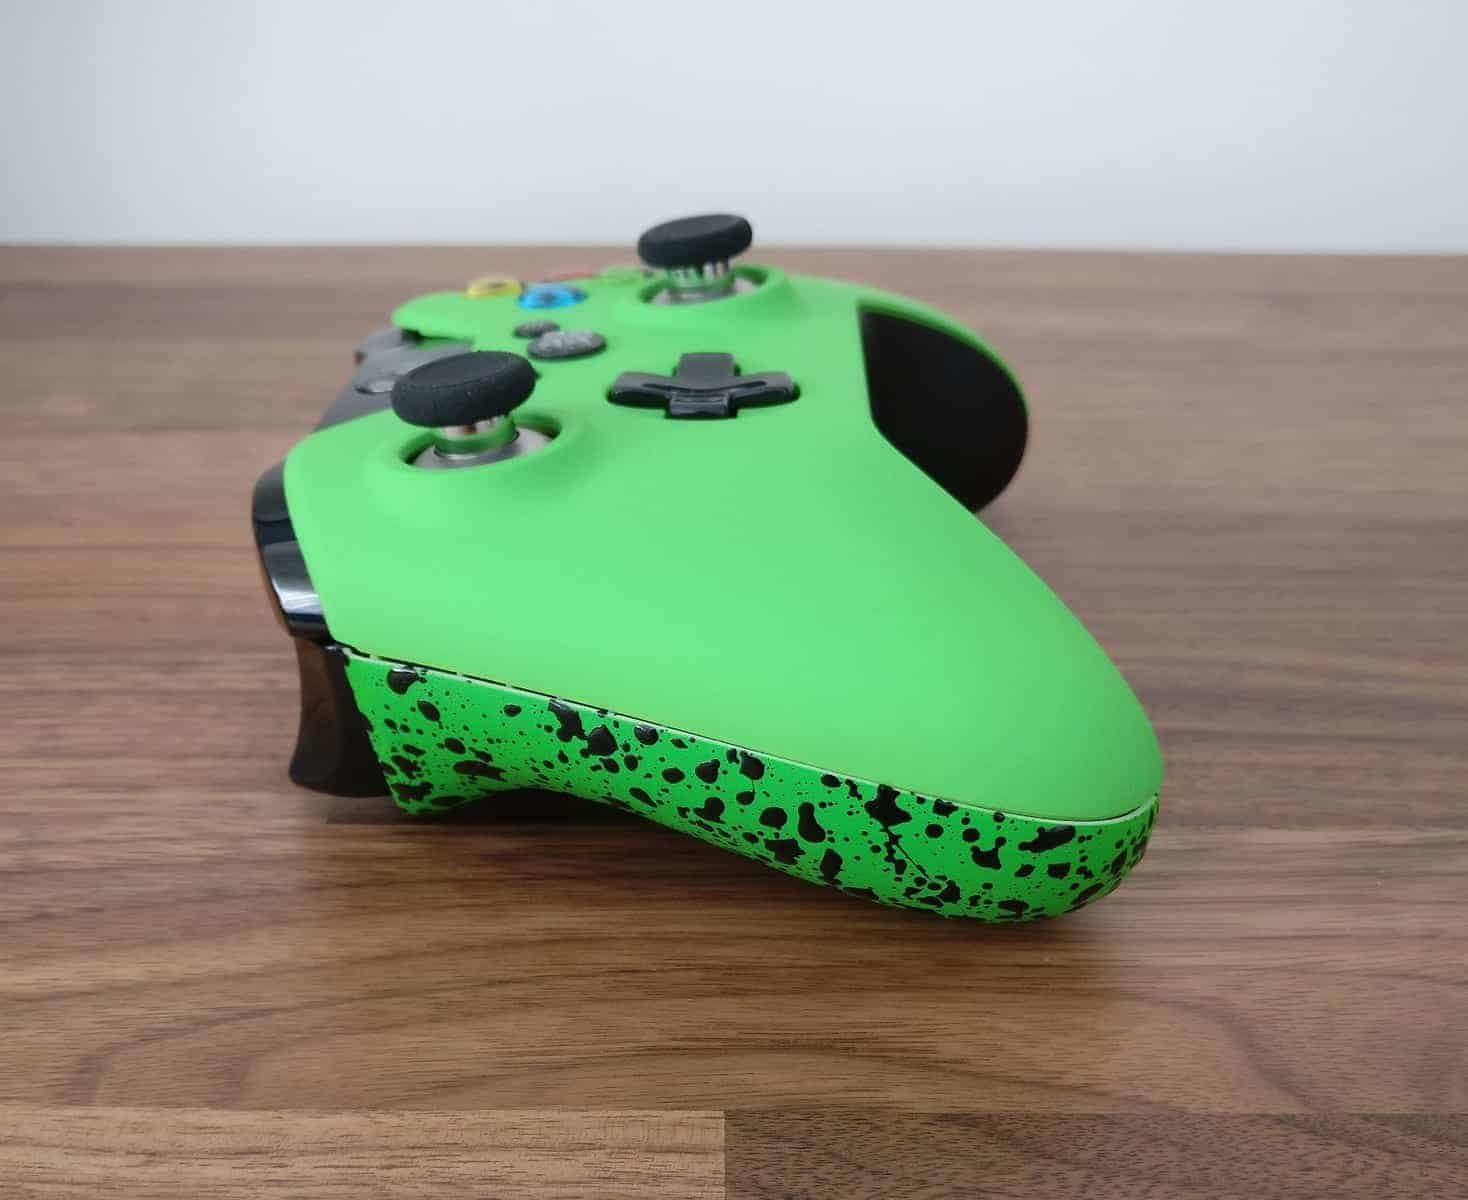 mega-modz-planey-xbox-Photos-05 Mega Modz Planet Modded PS4 and Xbox One Controller Review